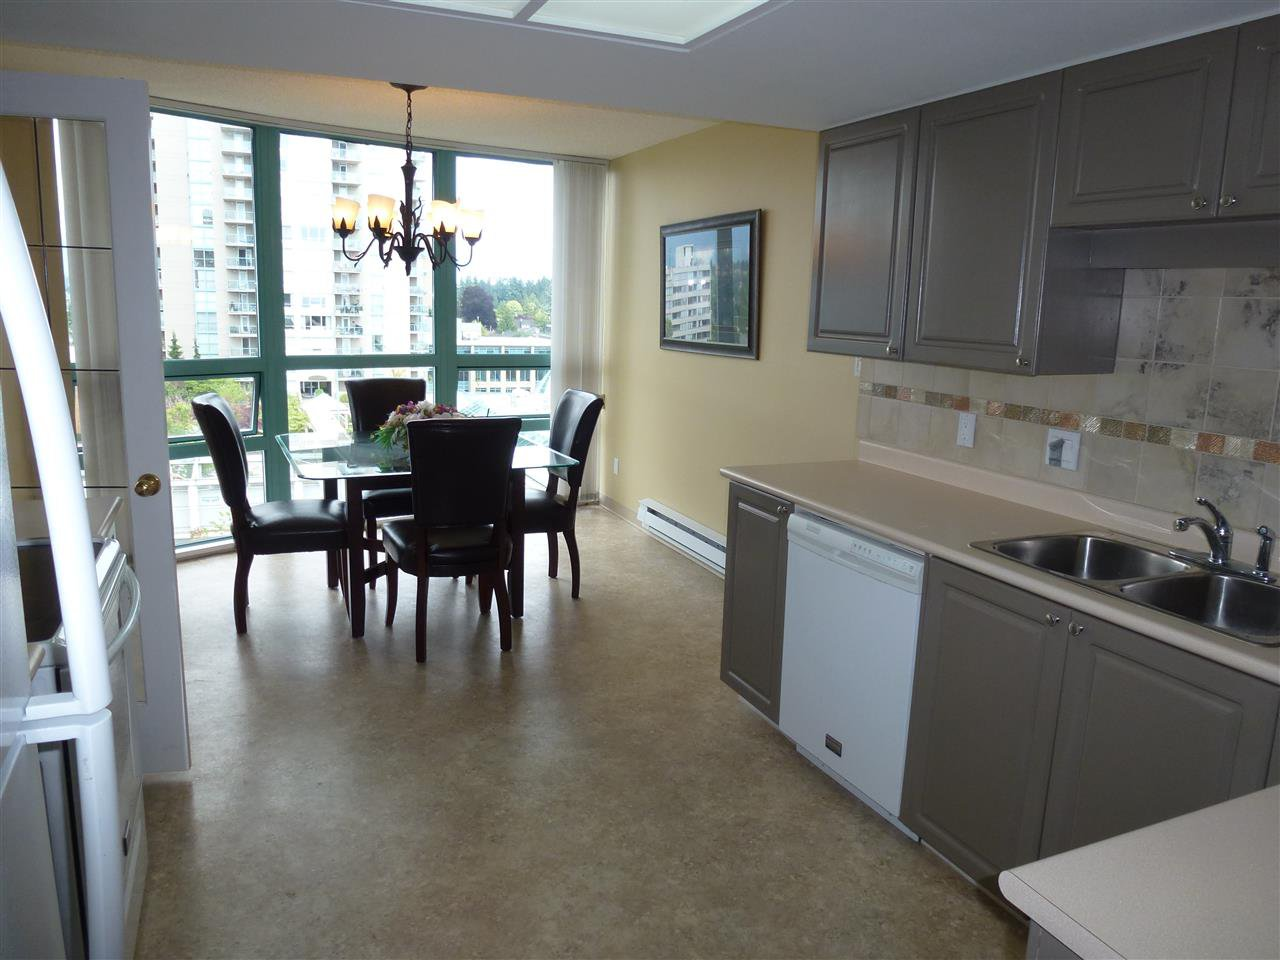 Photo 4: Photos: 904 728 PRINCESS Street in New Westminster: Uptown NW Condo for sale : MLS®# R2090233